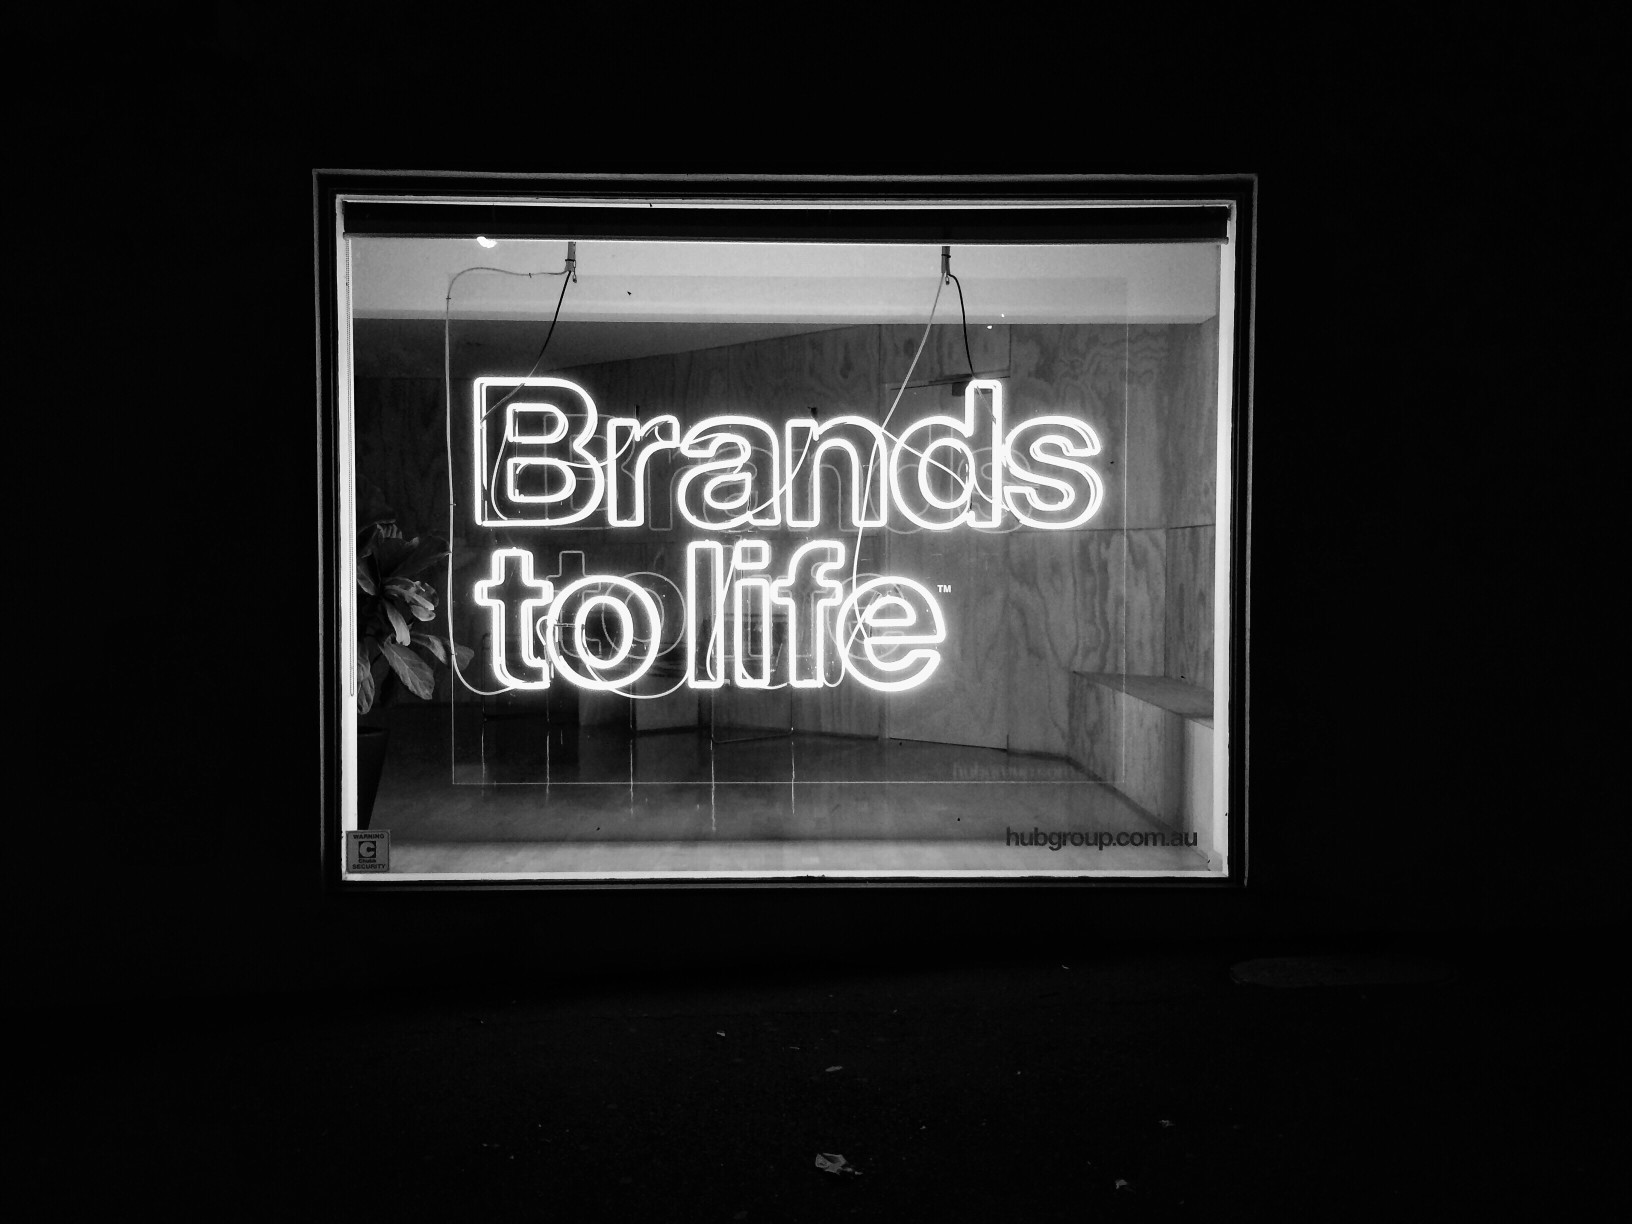 Branding/Marketing Consults or Trainings